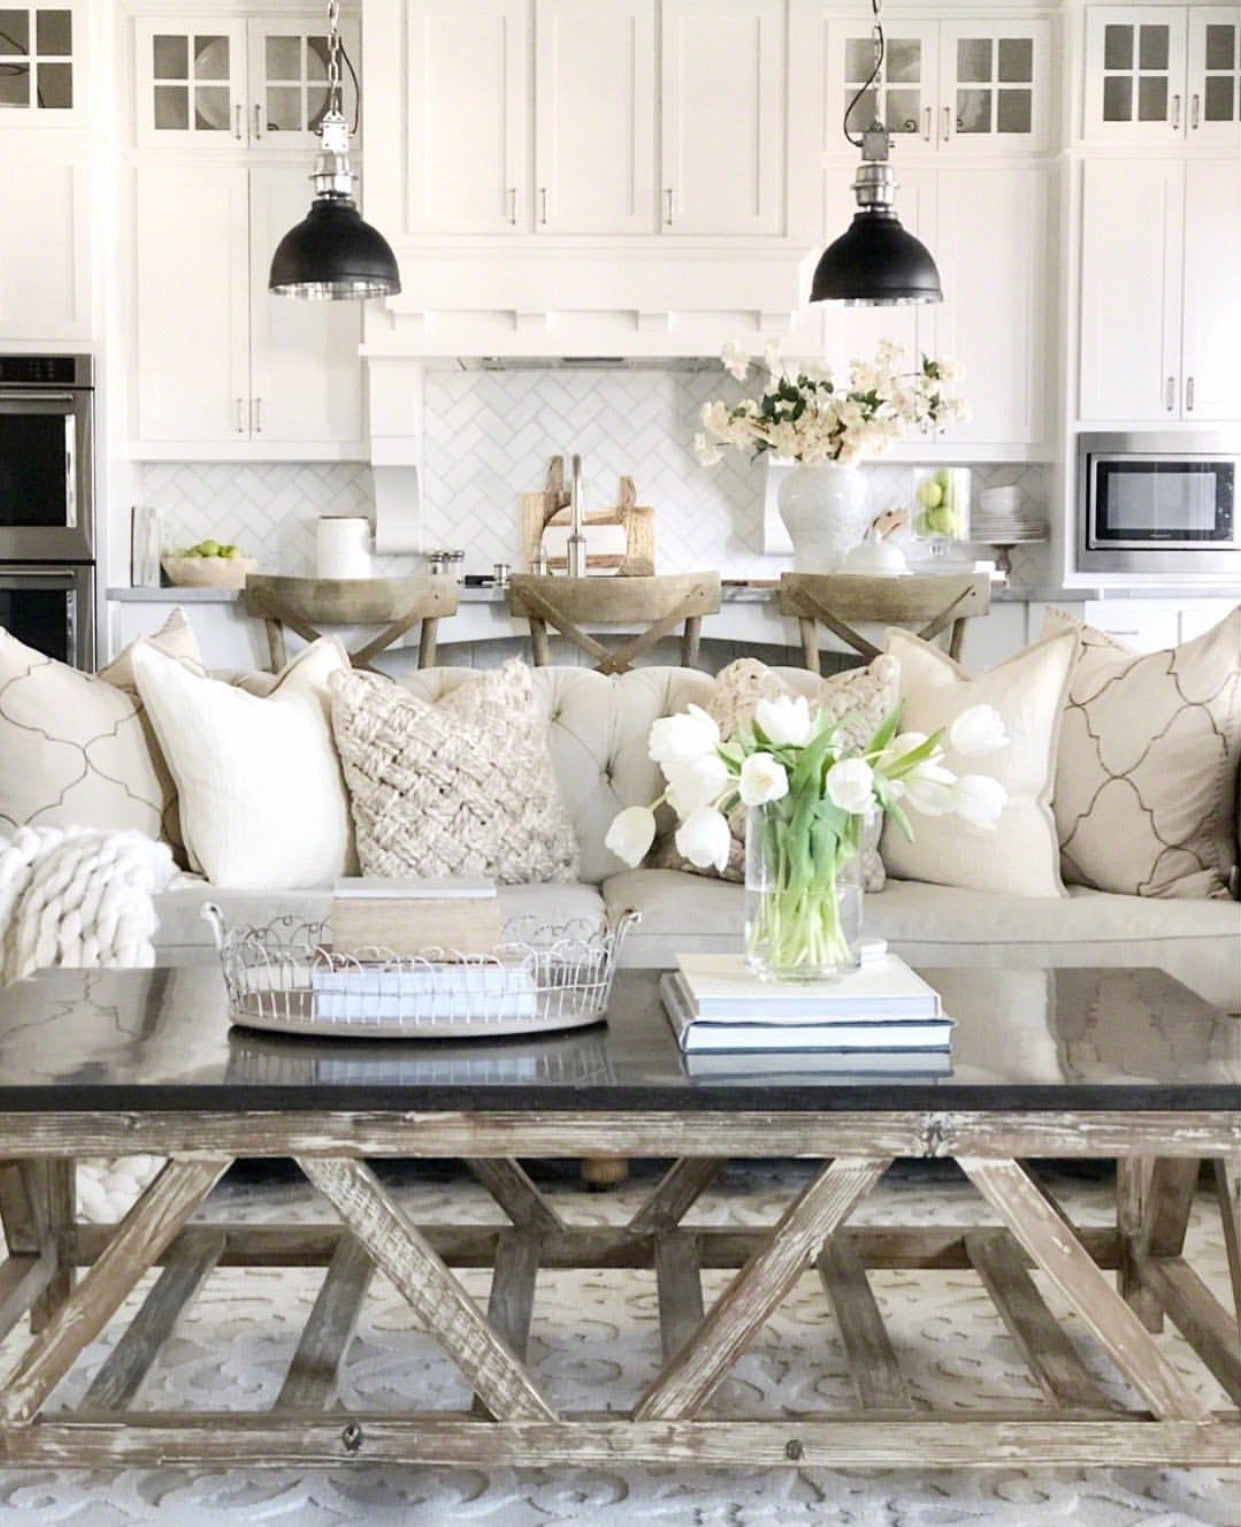 10 Stunning Spring Decorating Tips You Need To Try Right Now